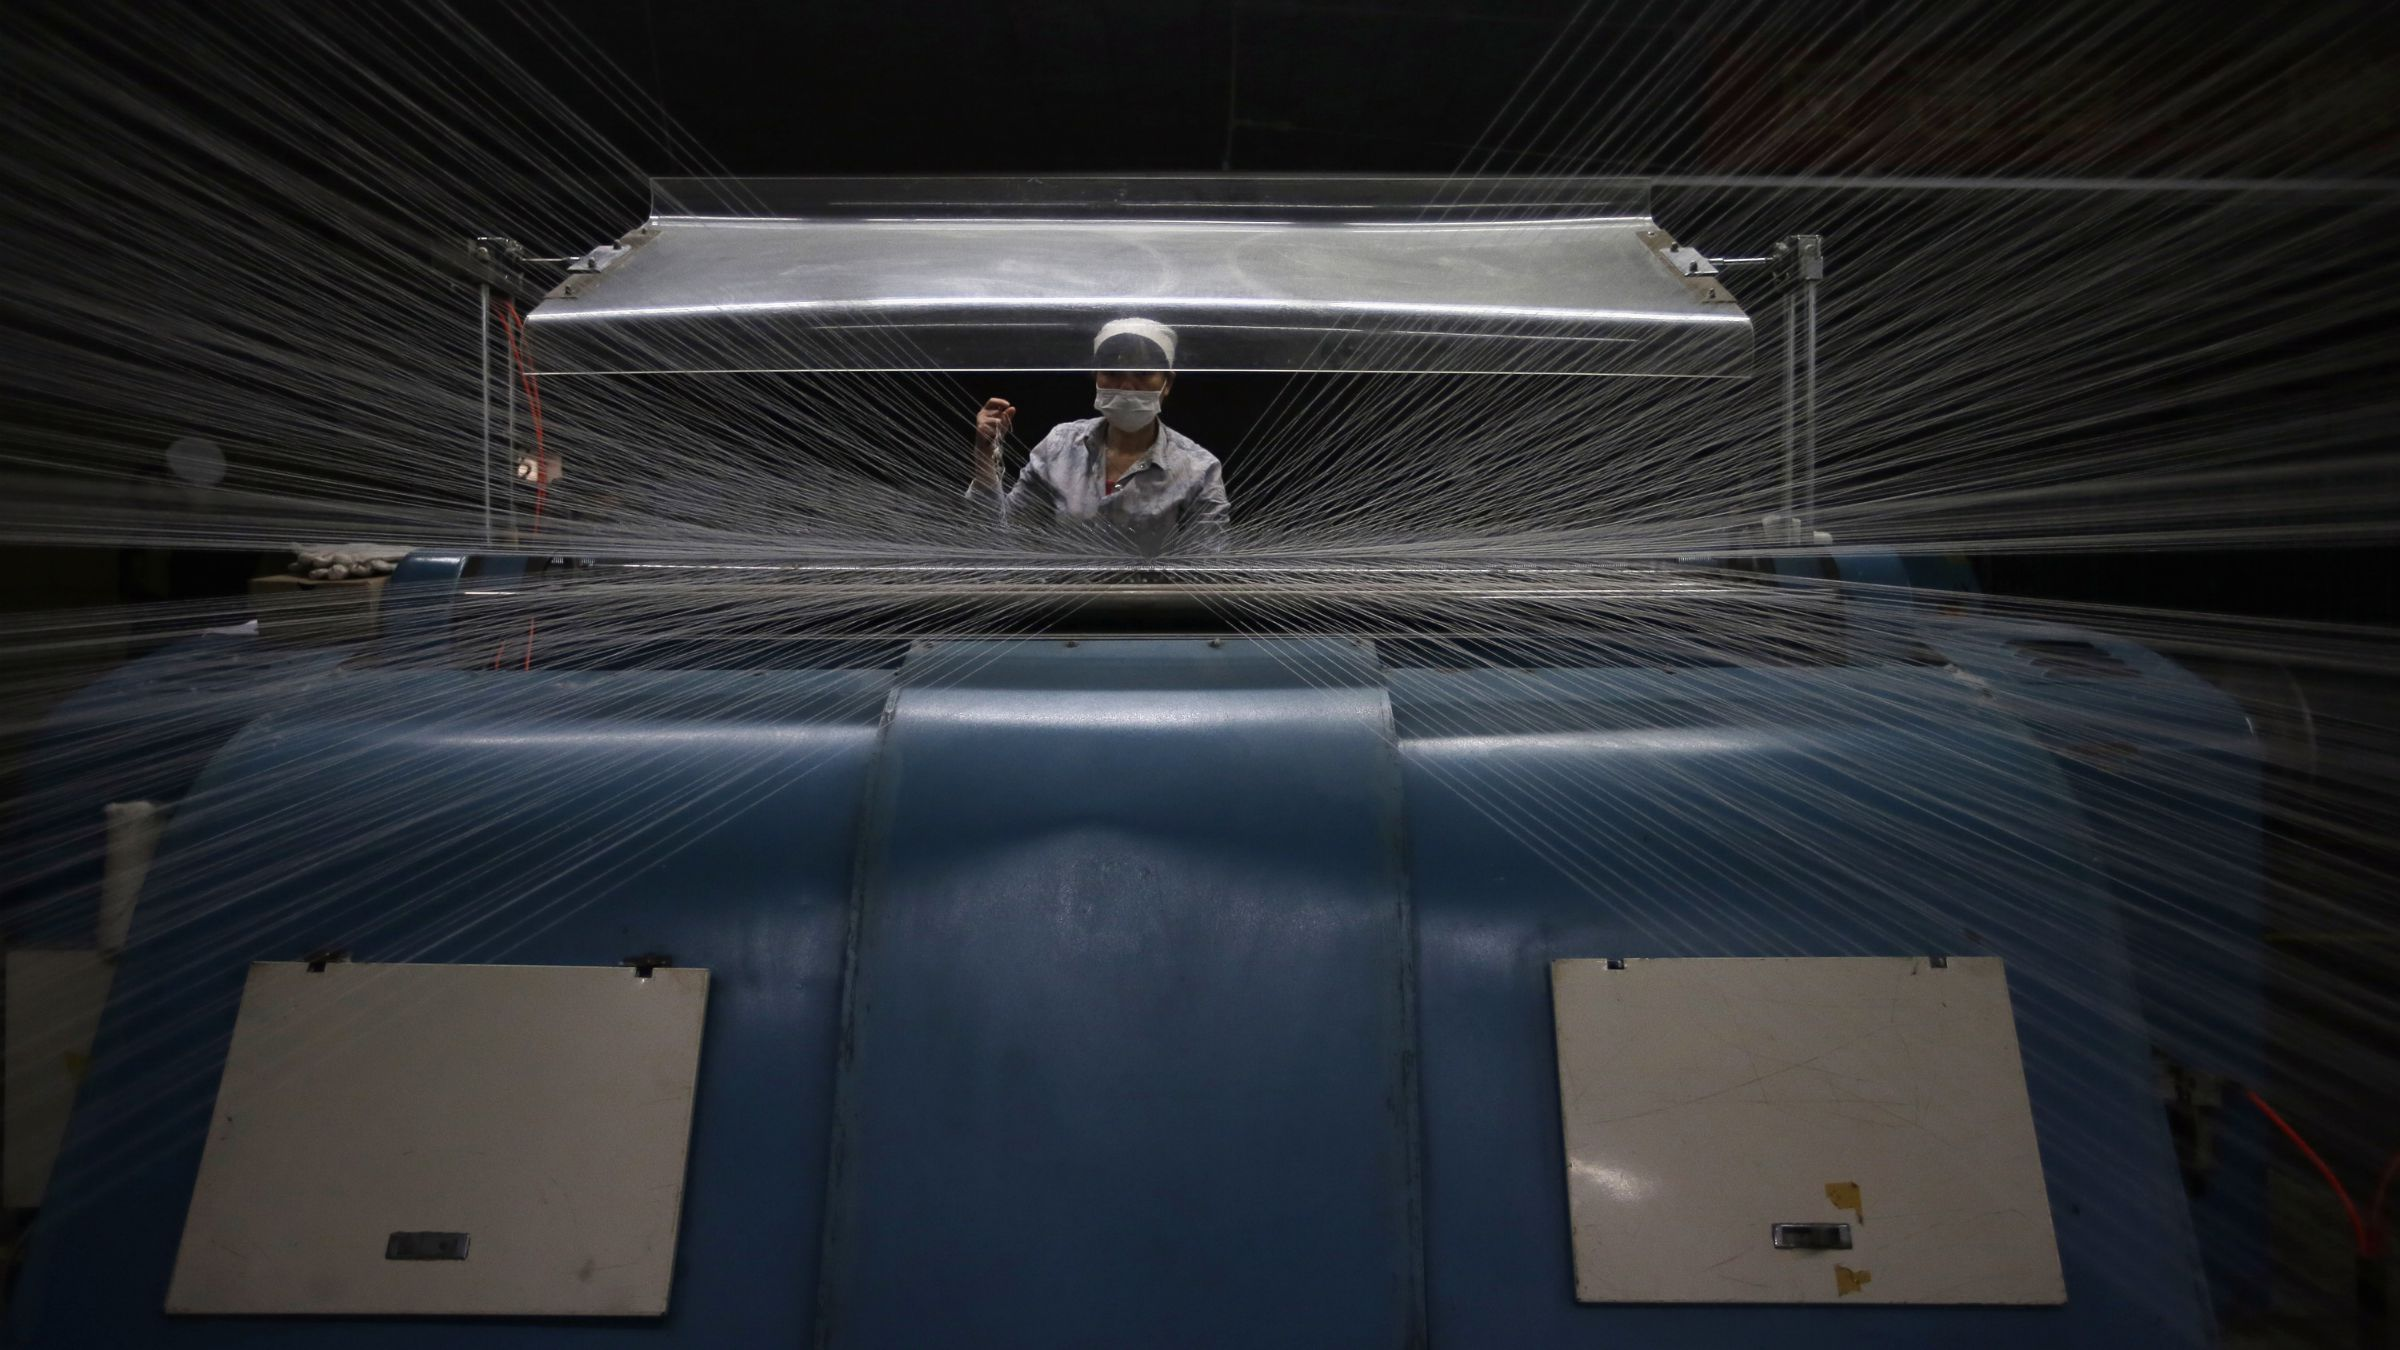 An employee works at a textile factory in Wuhan, Hubei province, April 30, 2014. Activity in China's factories increased marginally in April but export orders fell sharply, a government survey showed on Thursday, adding to questions about whether the world's second-largest economy is stabilising after its first-quarter slowdown. REUTERS/Stringer